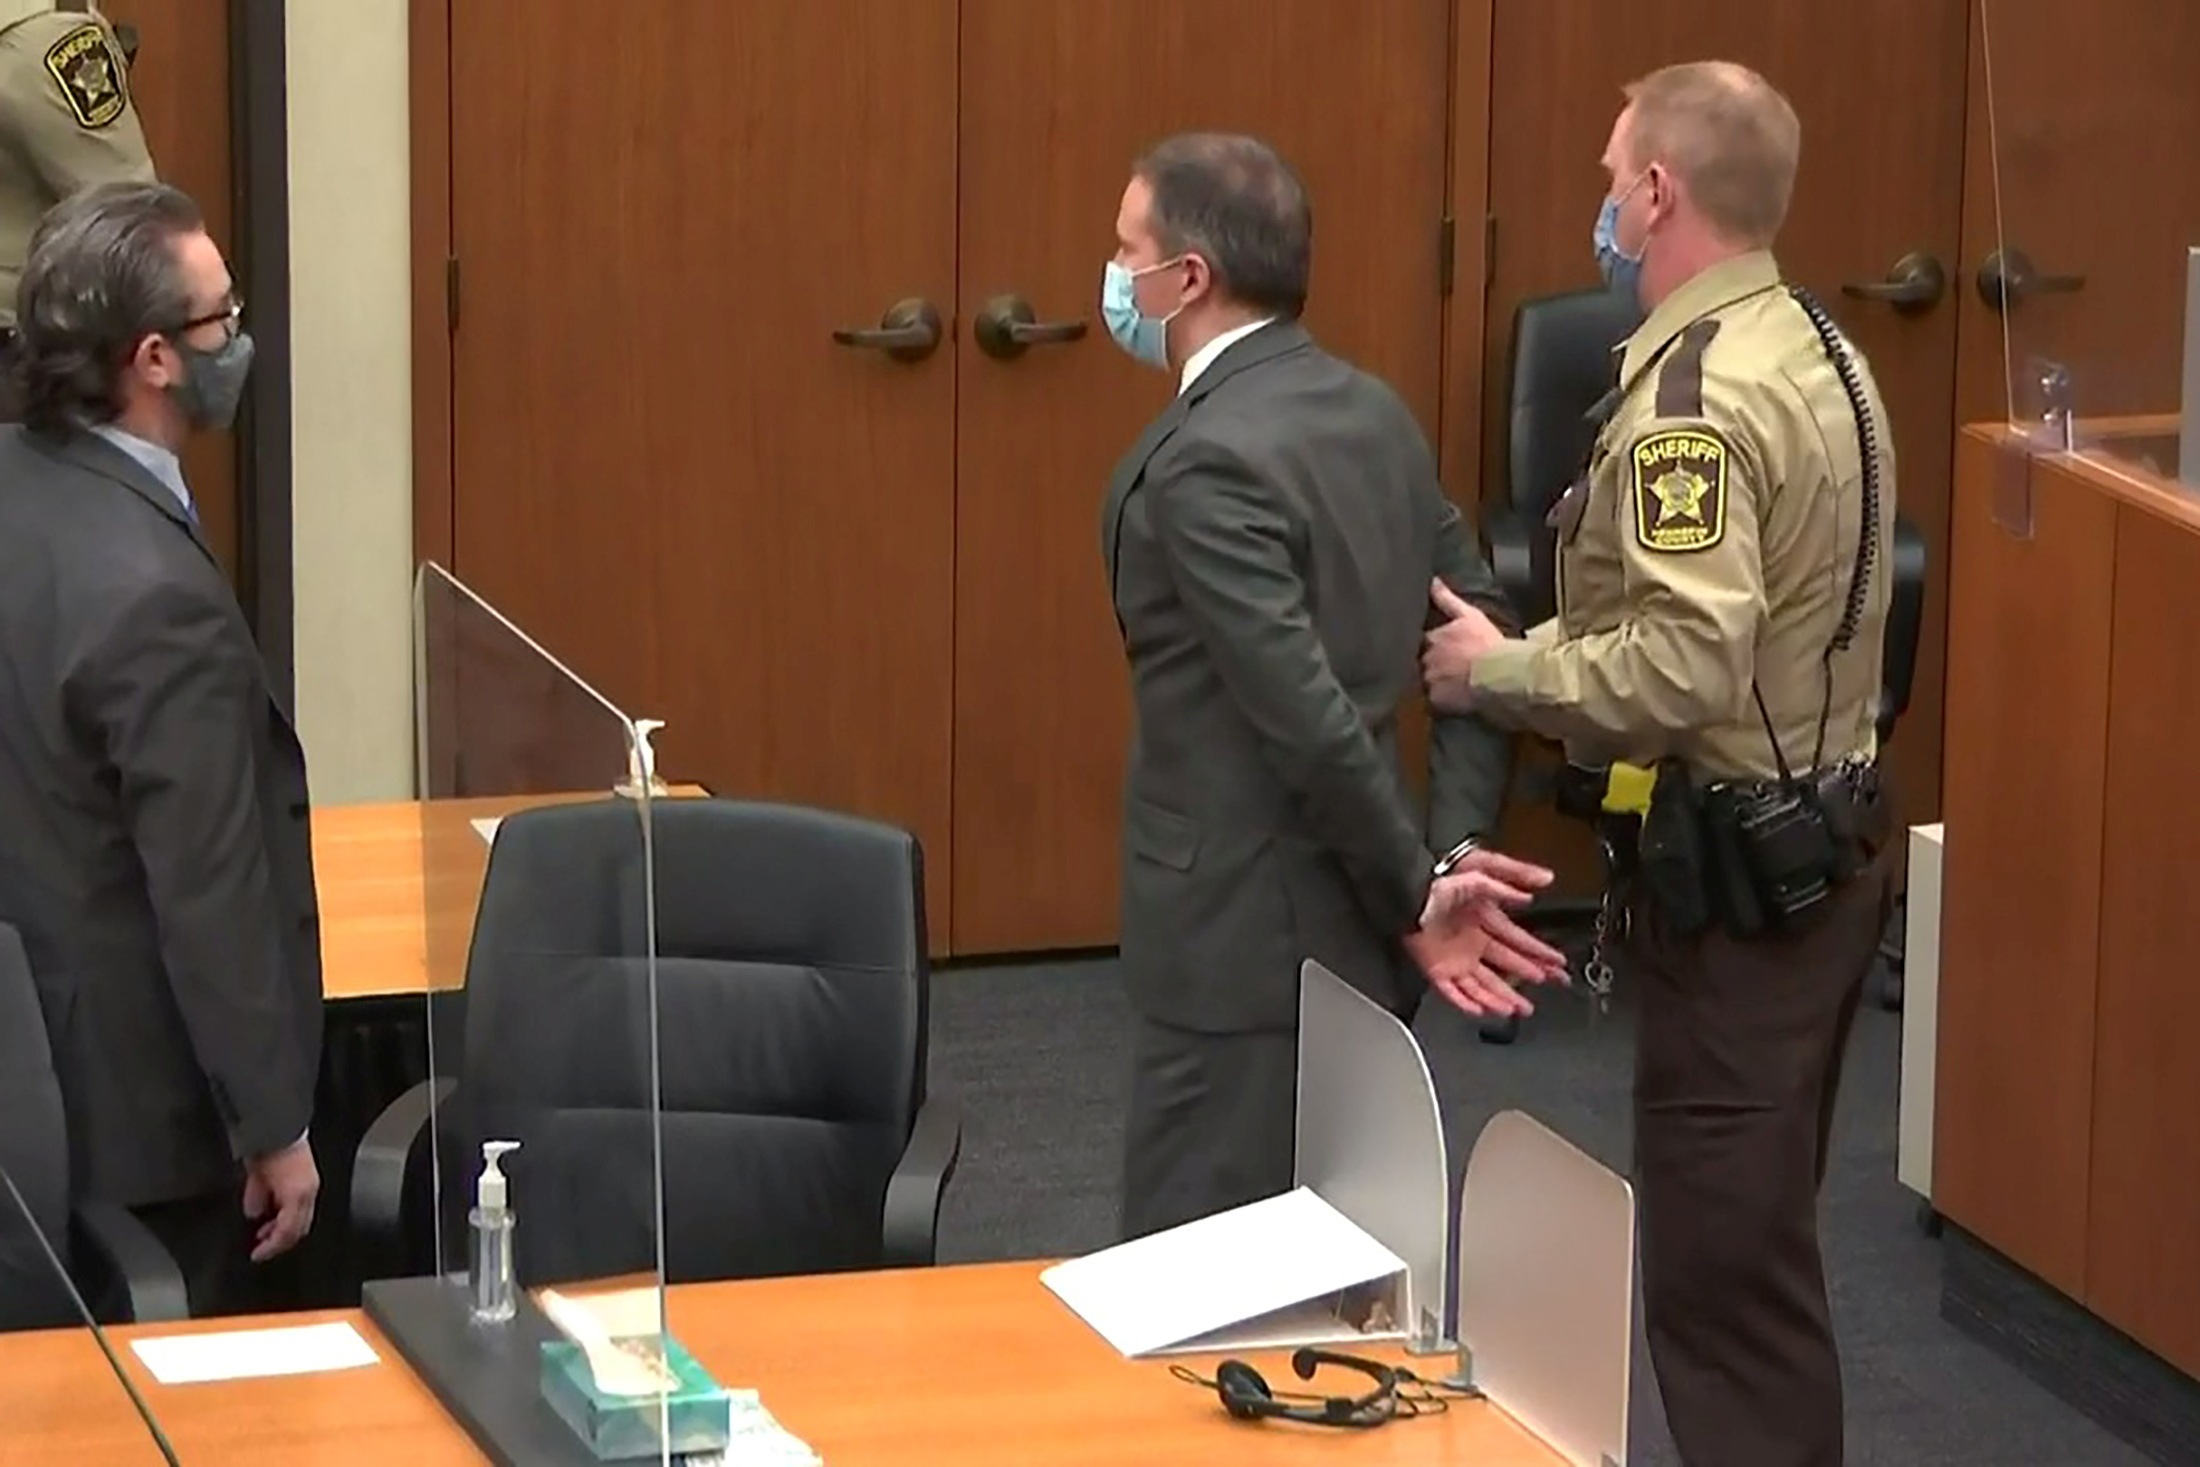 Former Minneapolis police officer Derek Chauvin is led away in handcuffs after a jury found him guilty of all charges in his trial for second-degree murder, third-degree murder and second-degree manslaughter in the death of George Floyd in Minneapolis, Minnesota, U.S. April 20, 2021 in a still image from video.  Pool via REUTERS